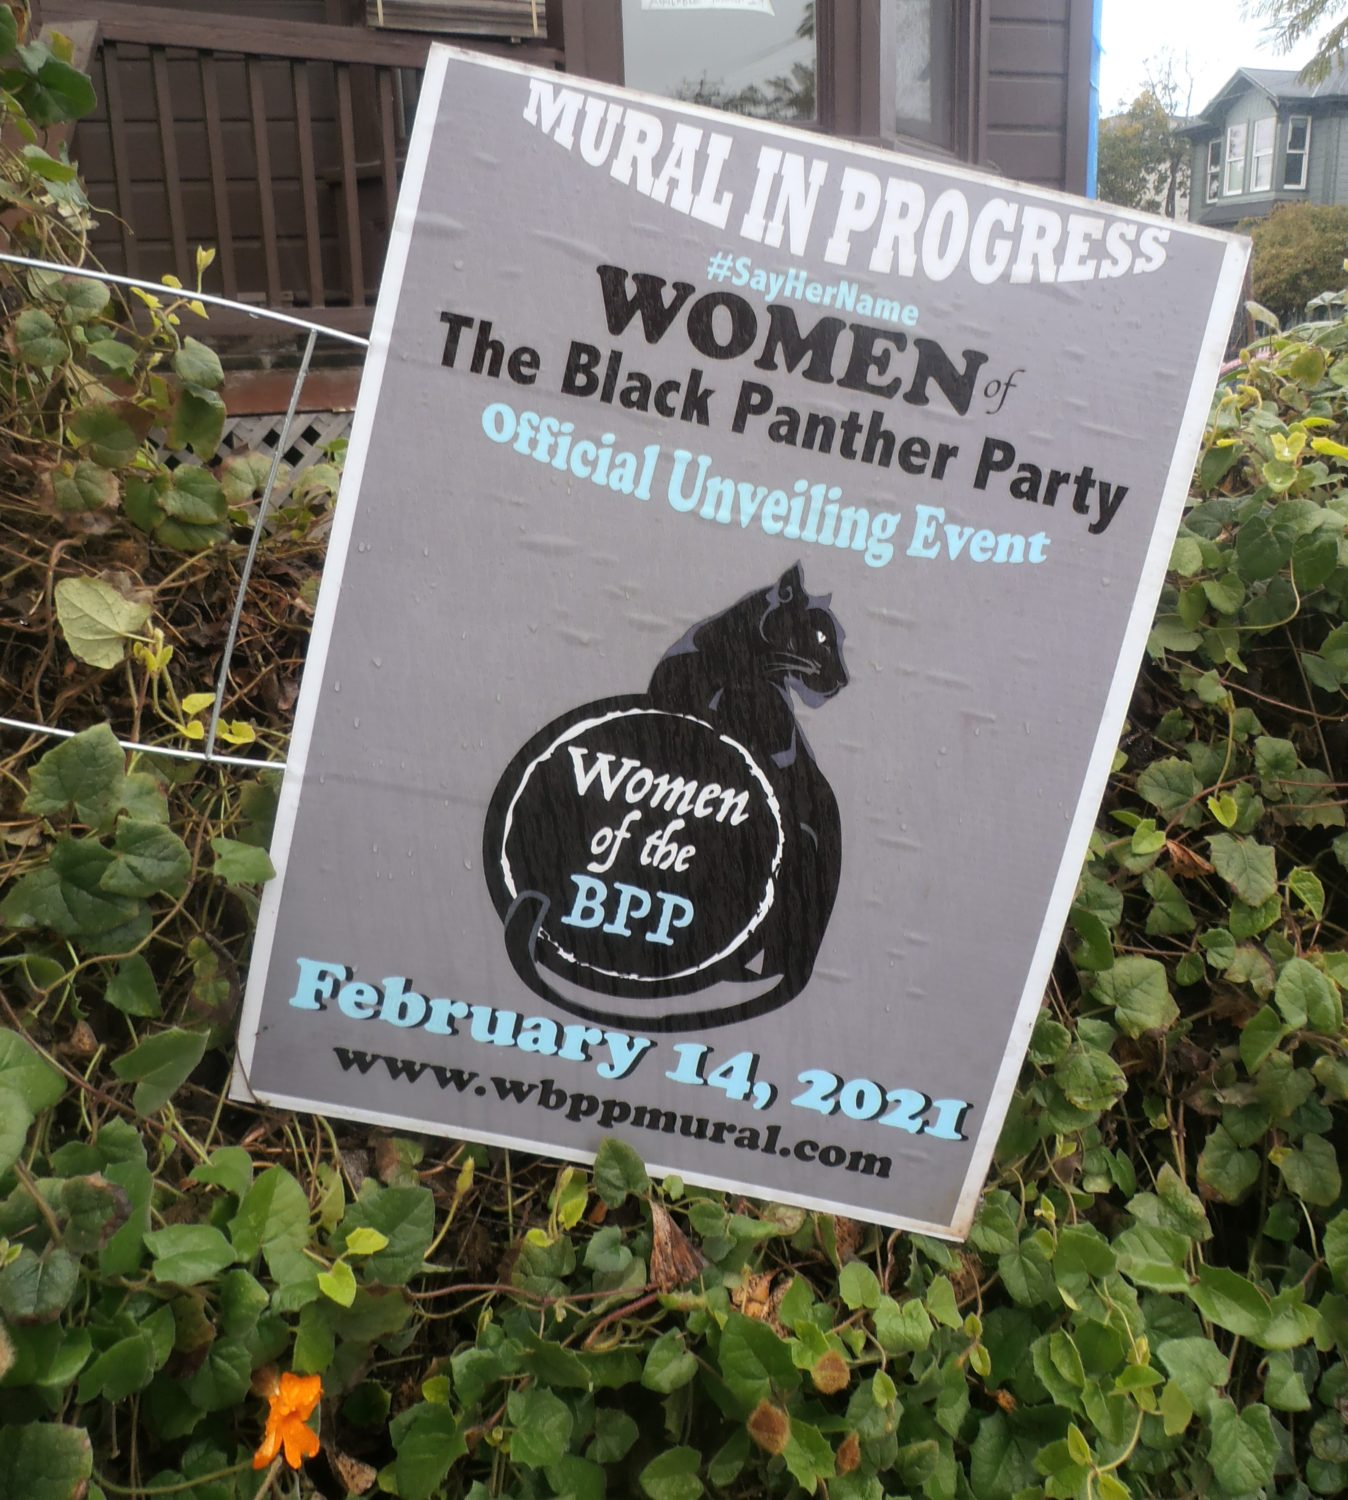 Women-of-Black-Panther-Party-to-be-unveiled-021421-by-Jahahara, Commemorating our sacred Alkebulan-Afrikan Story, Culture Currents